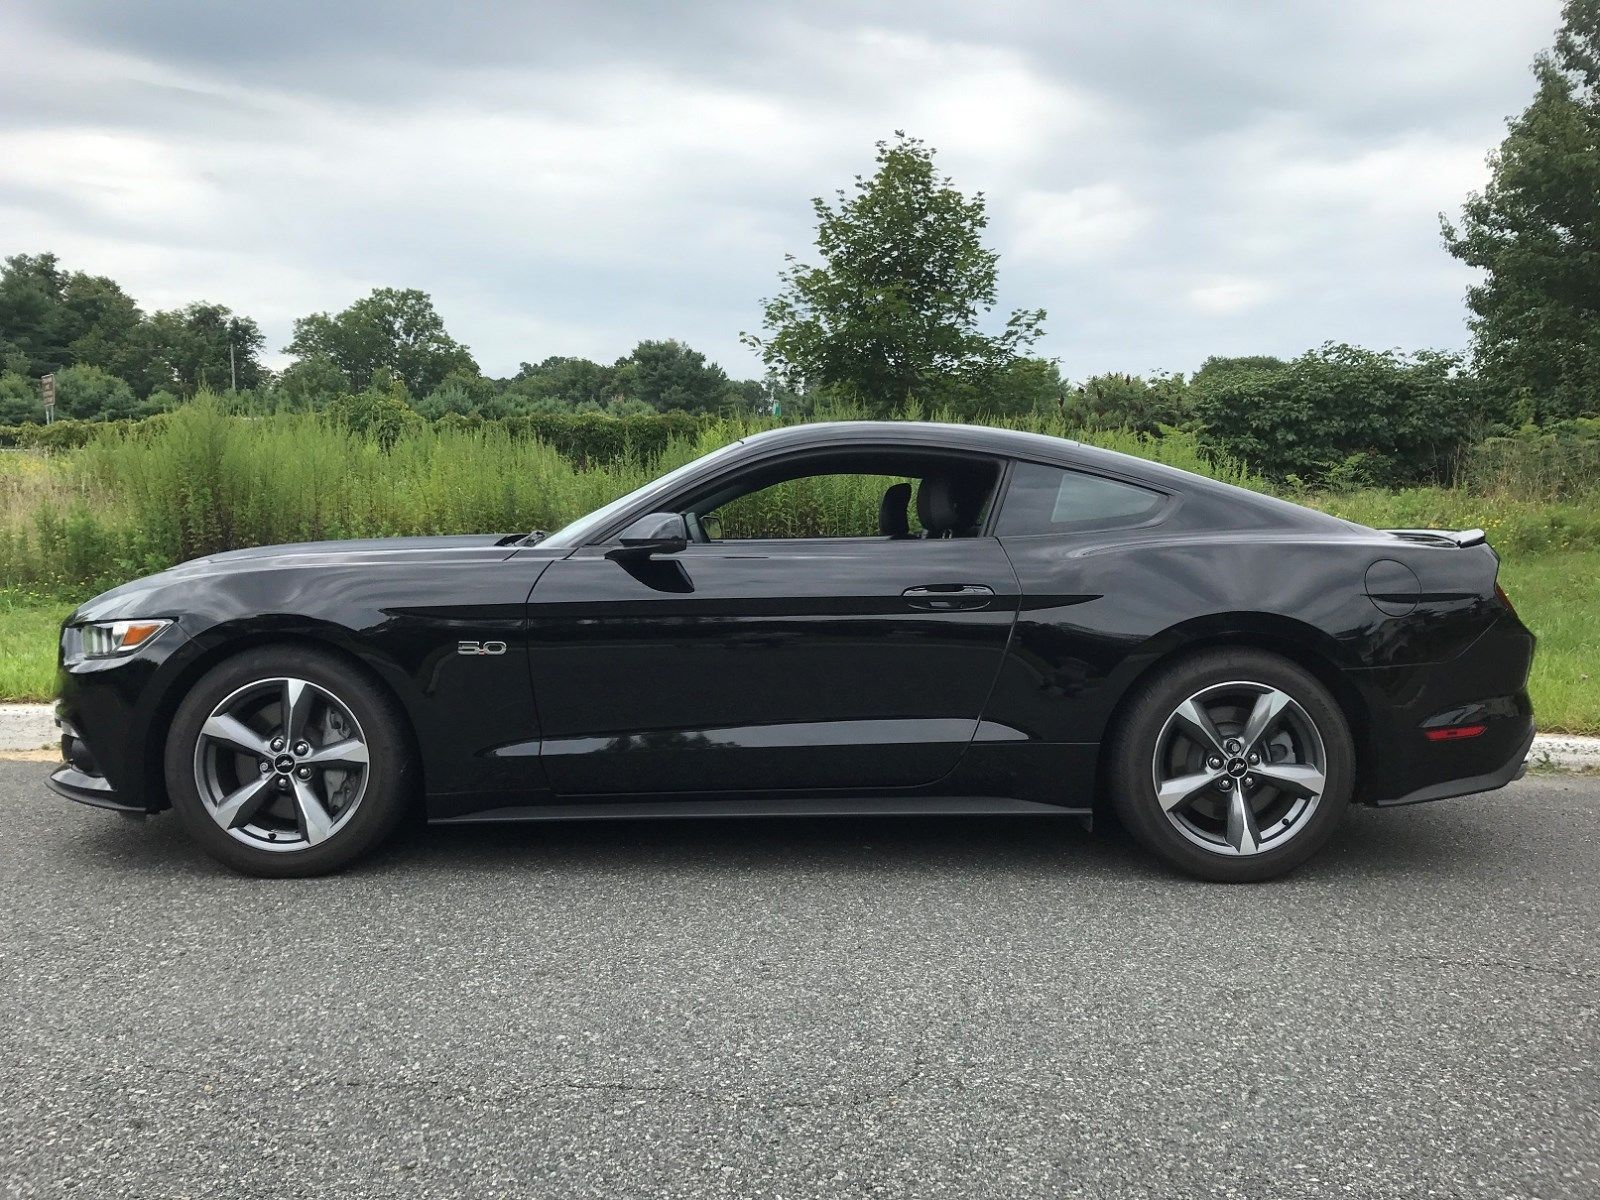 Cool Awesome Ford Mustang GT Premium Ford Mustang GT - Cool looking cars for sale